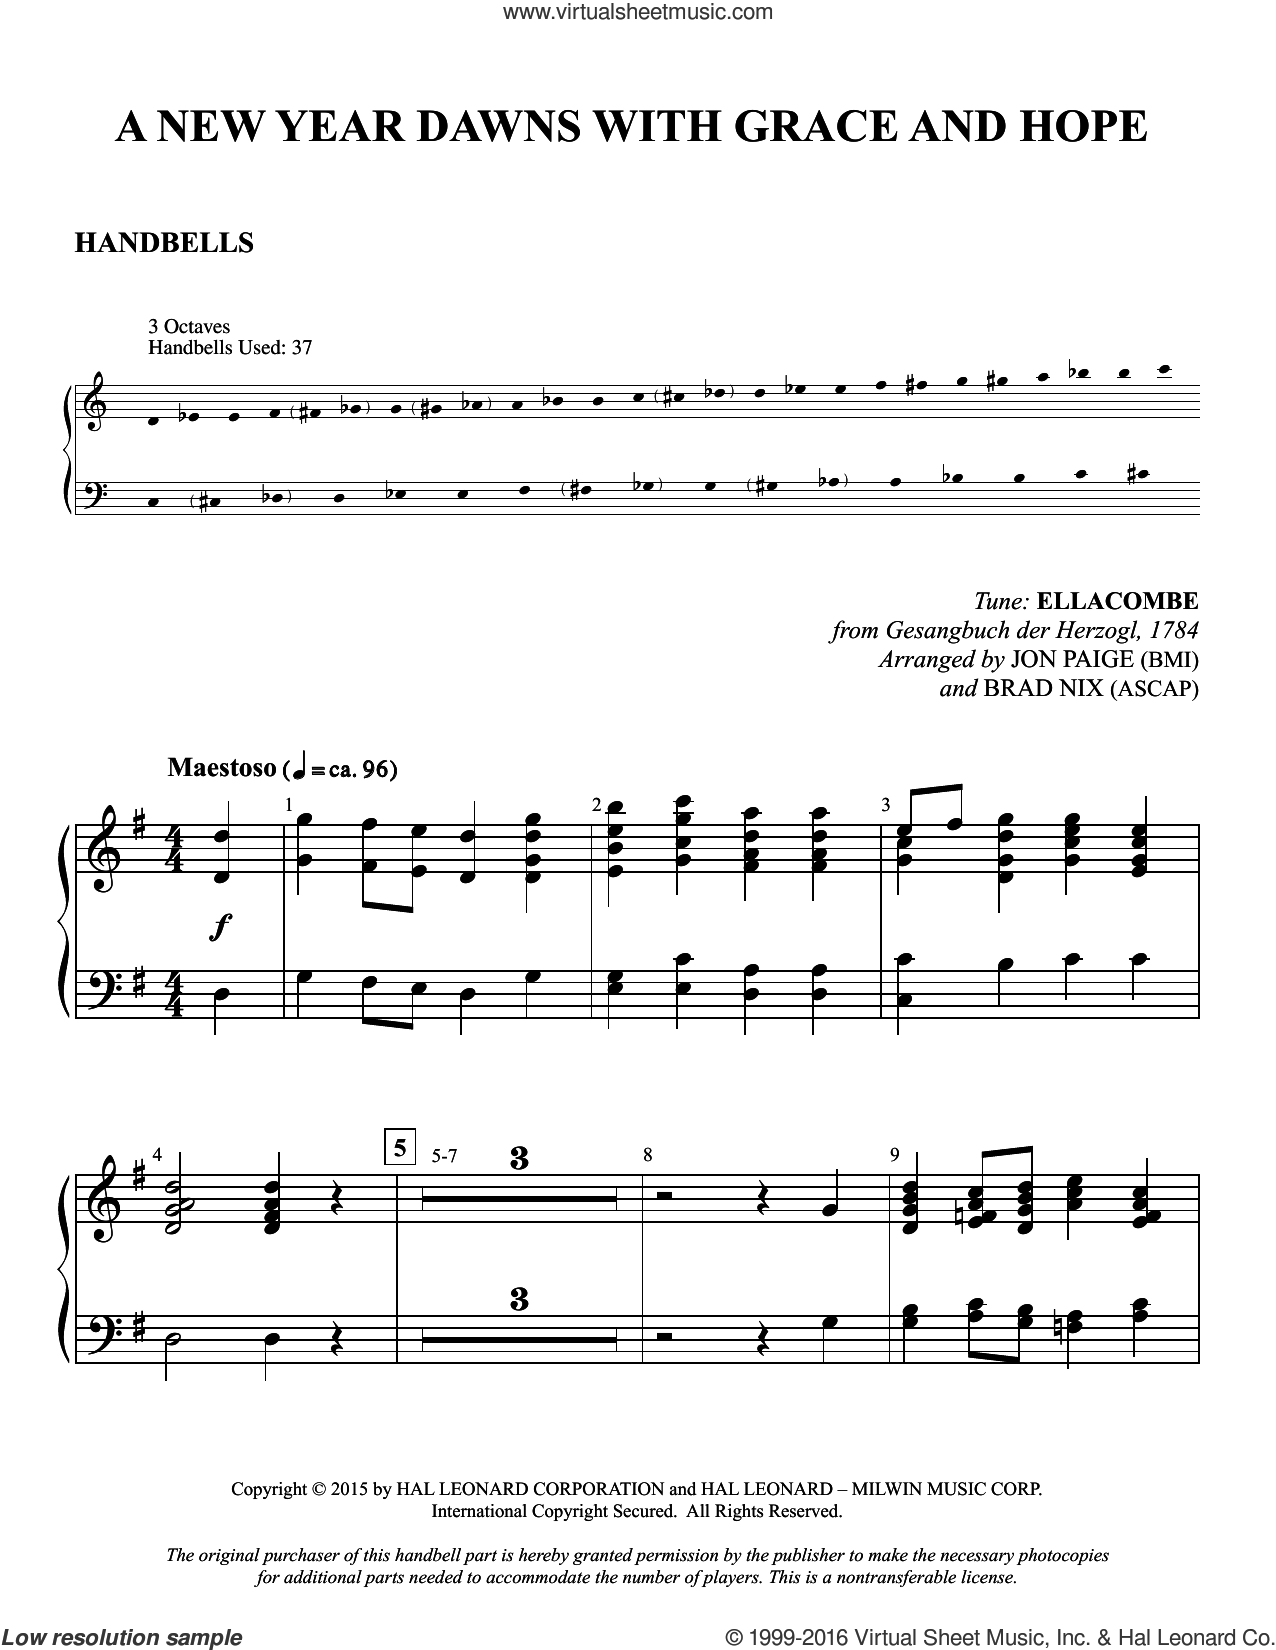 A New Year Dawns with Grace and Hope sheet music for orchestra/band (handbells) by Gesangbuch der Herzogl, Brad Nix, Jon Paige and Jonathan Martin. Score Image Preview.